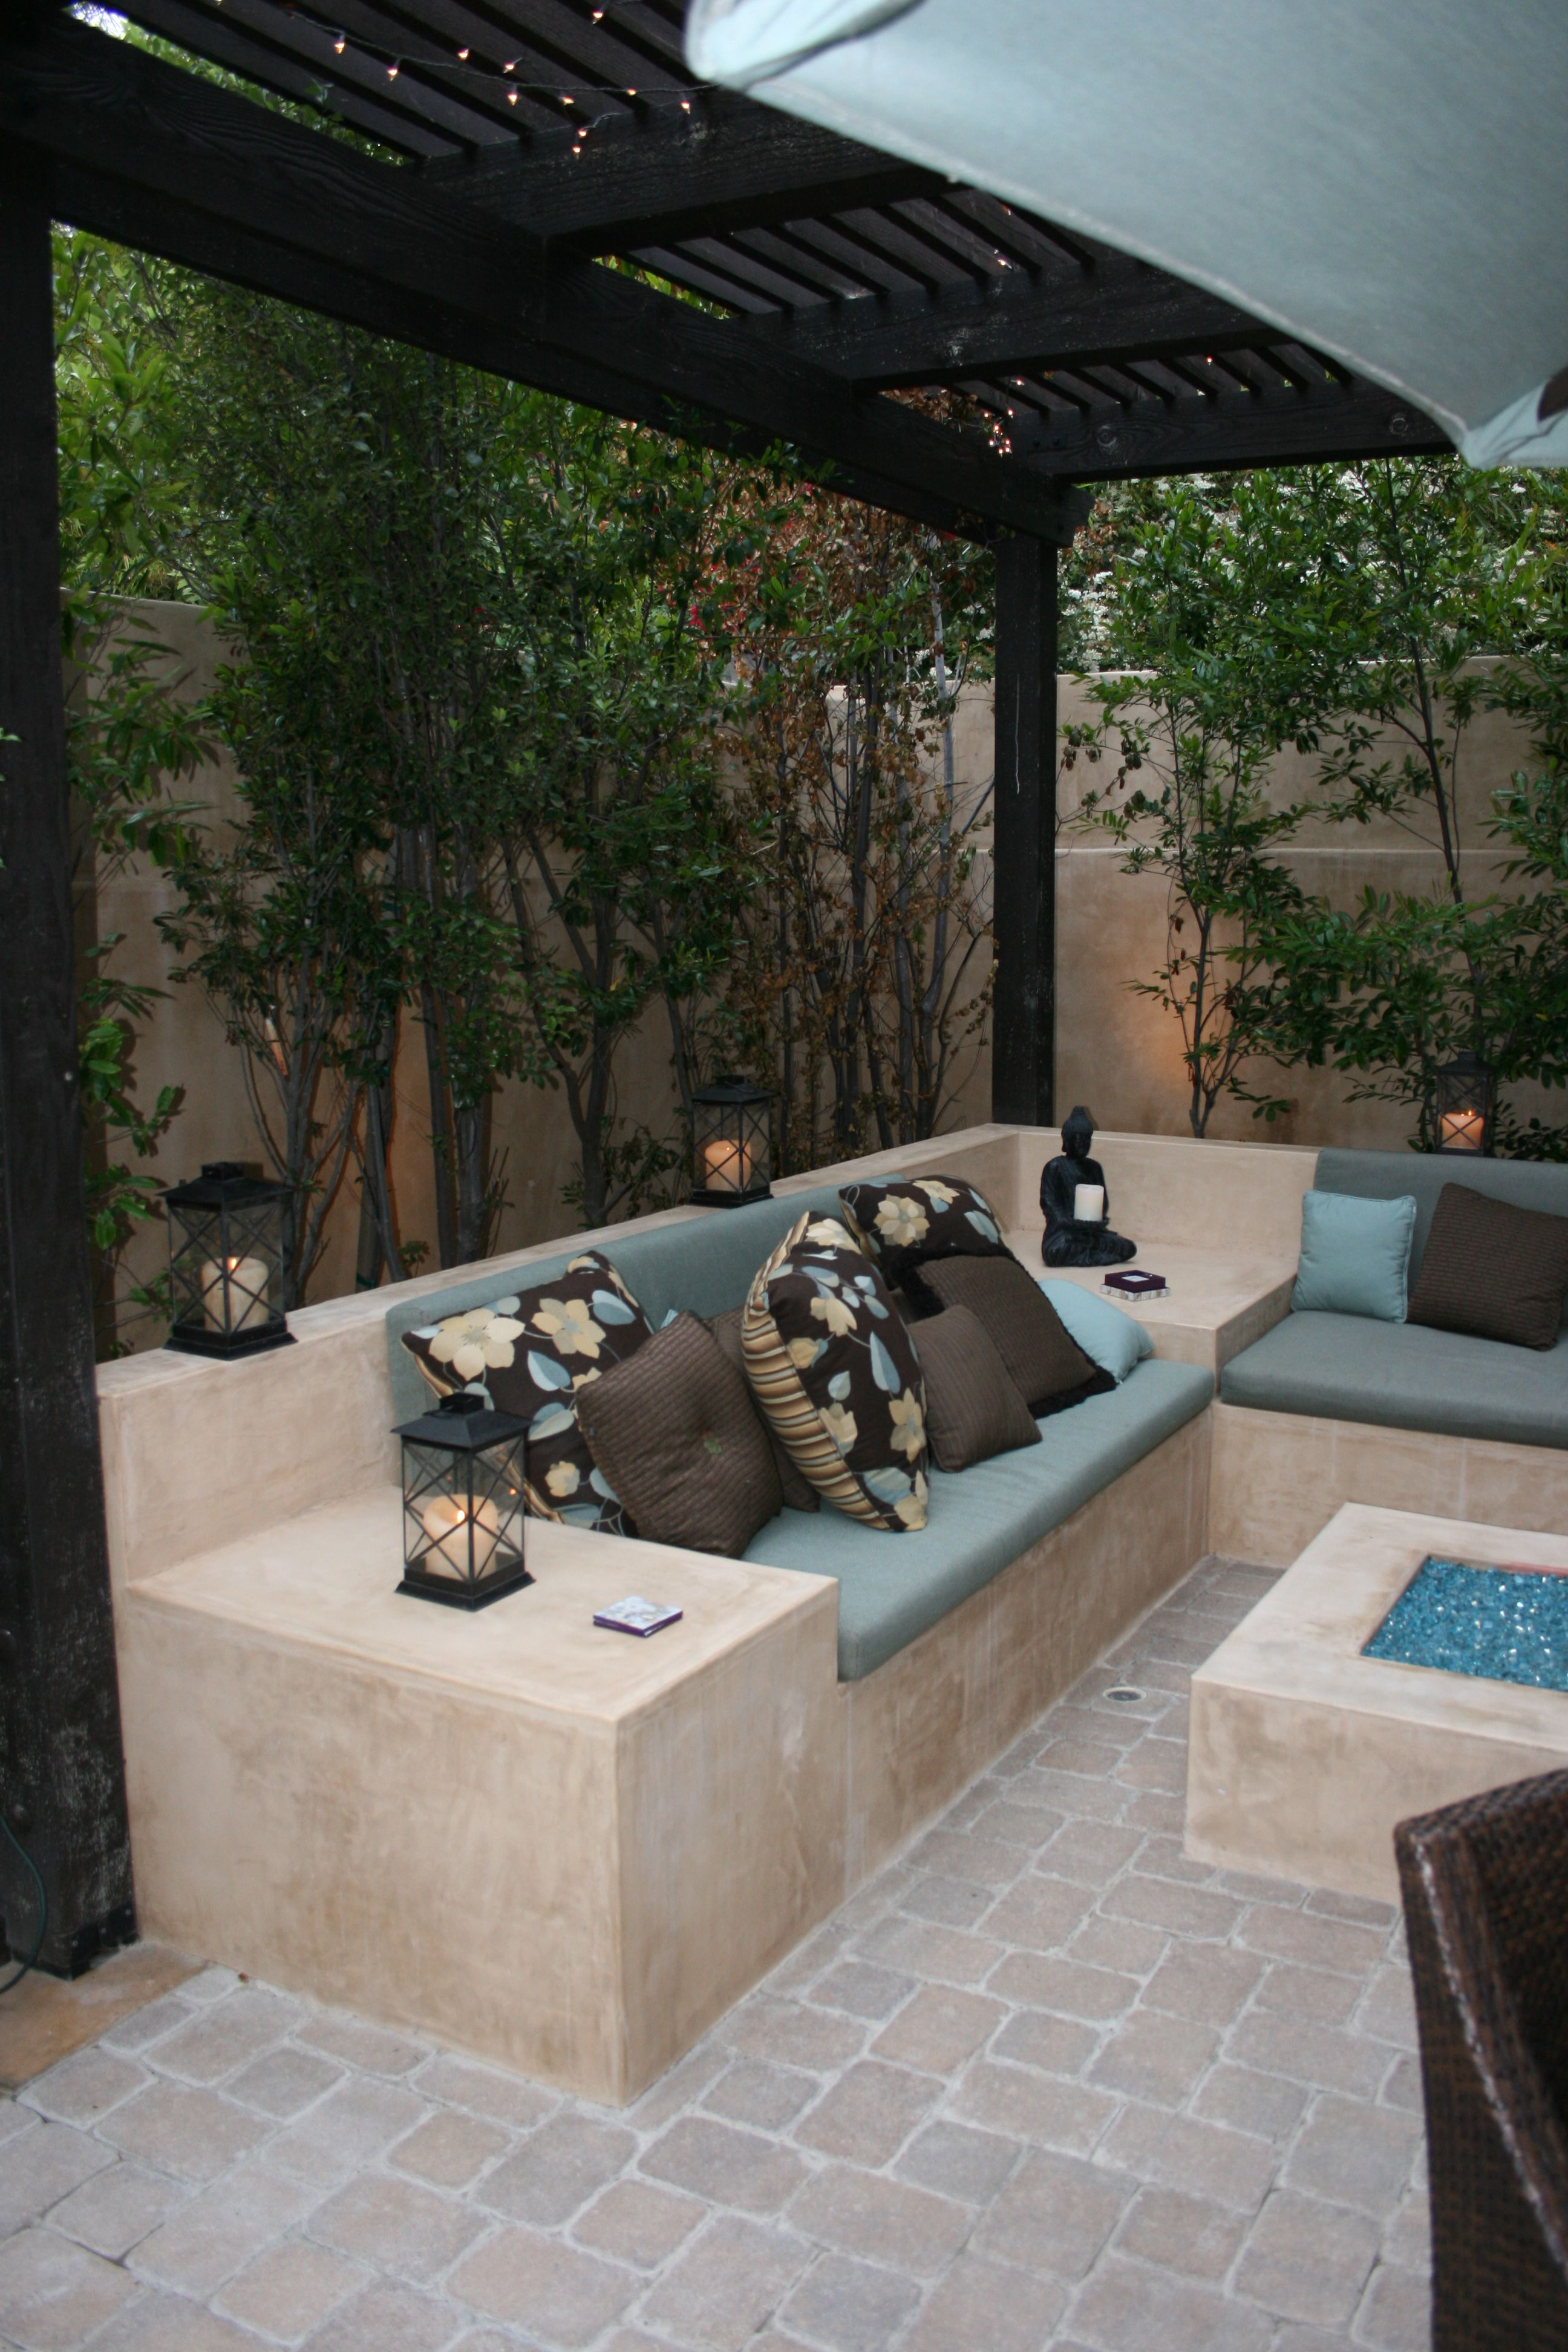 ciao newport beach fire pit area cozy and bench seat